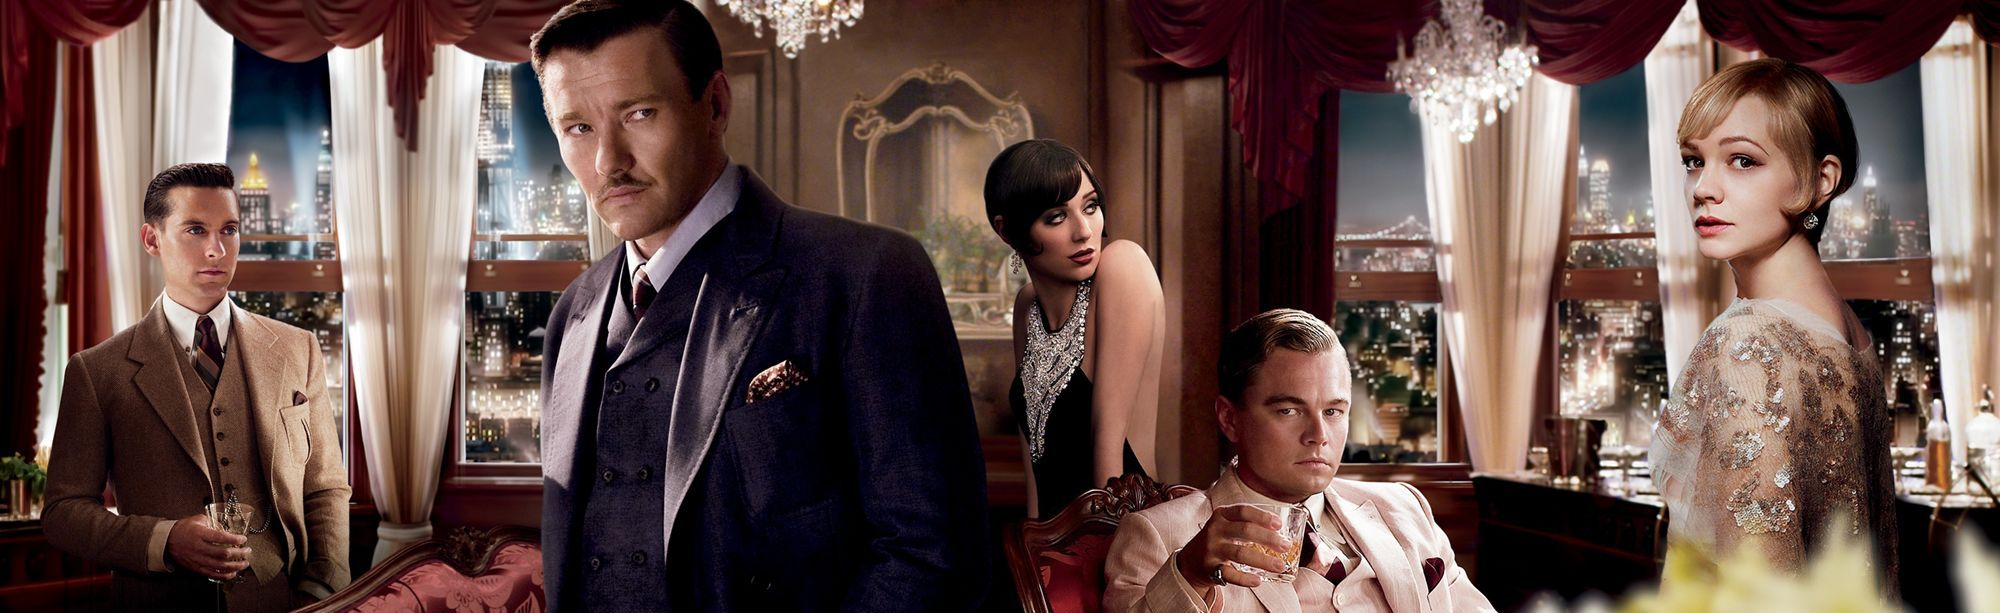 January Pop Culture and the Bible, Bible Study: The Great Gatsby  - Image 1